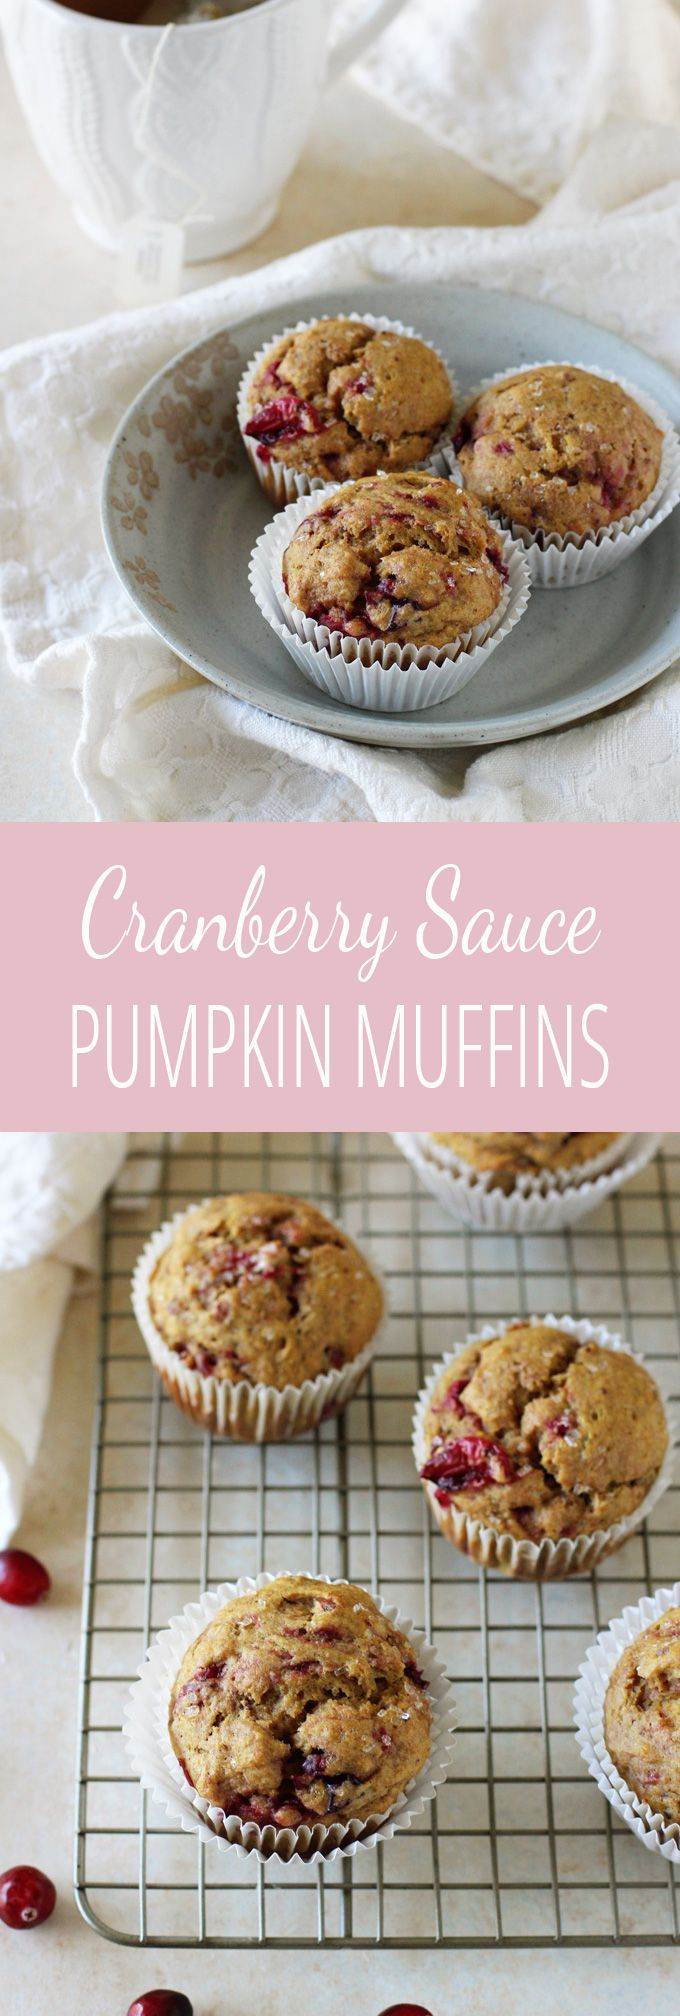 A simple, easy recipe for leftover cranberry sauce pumpkin muffins. Light, fluffy and filled with whole wheat flour, natural sweeteners and plenty of cranberry sauce from Thanksgiving!